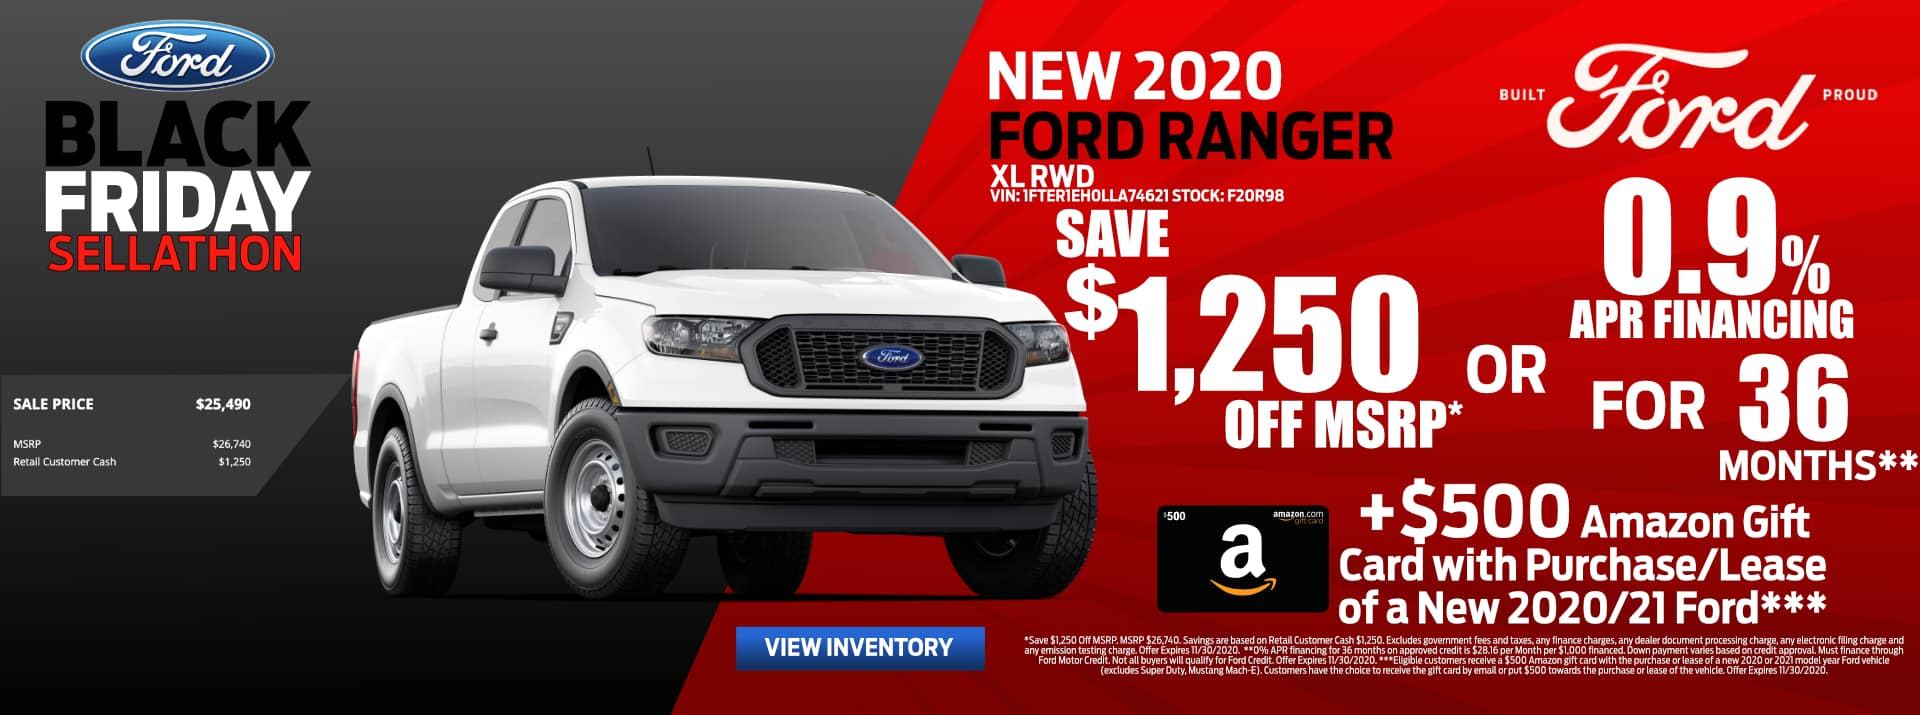 RR_Black Friday_November-2020_Ford_Ranger PSF